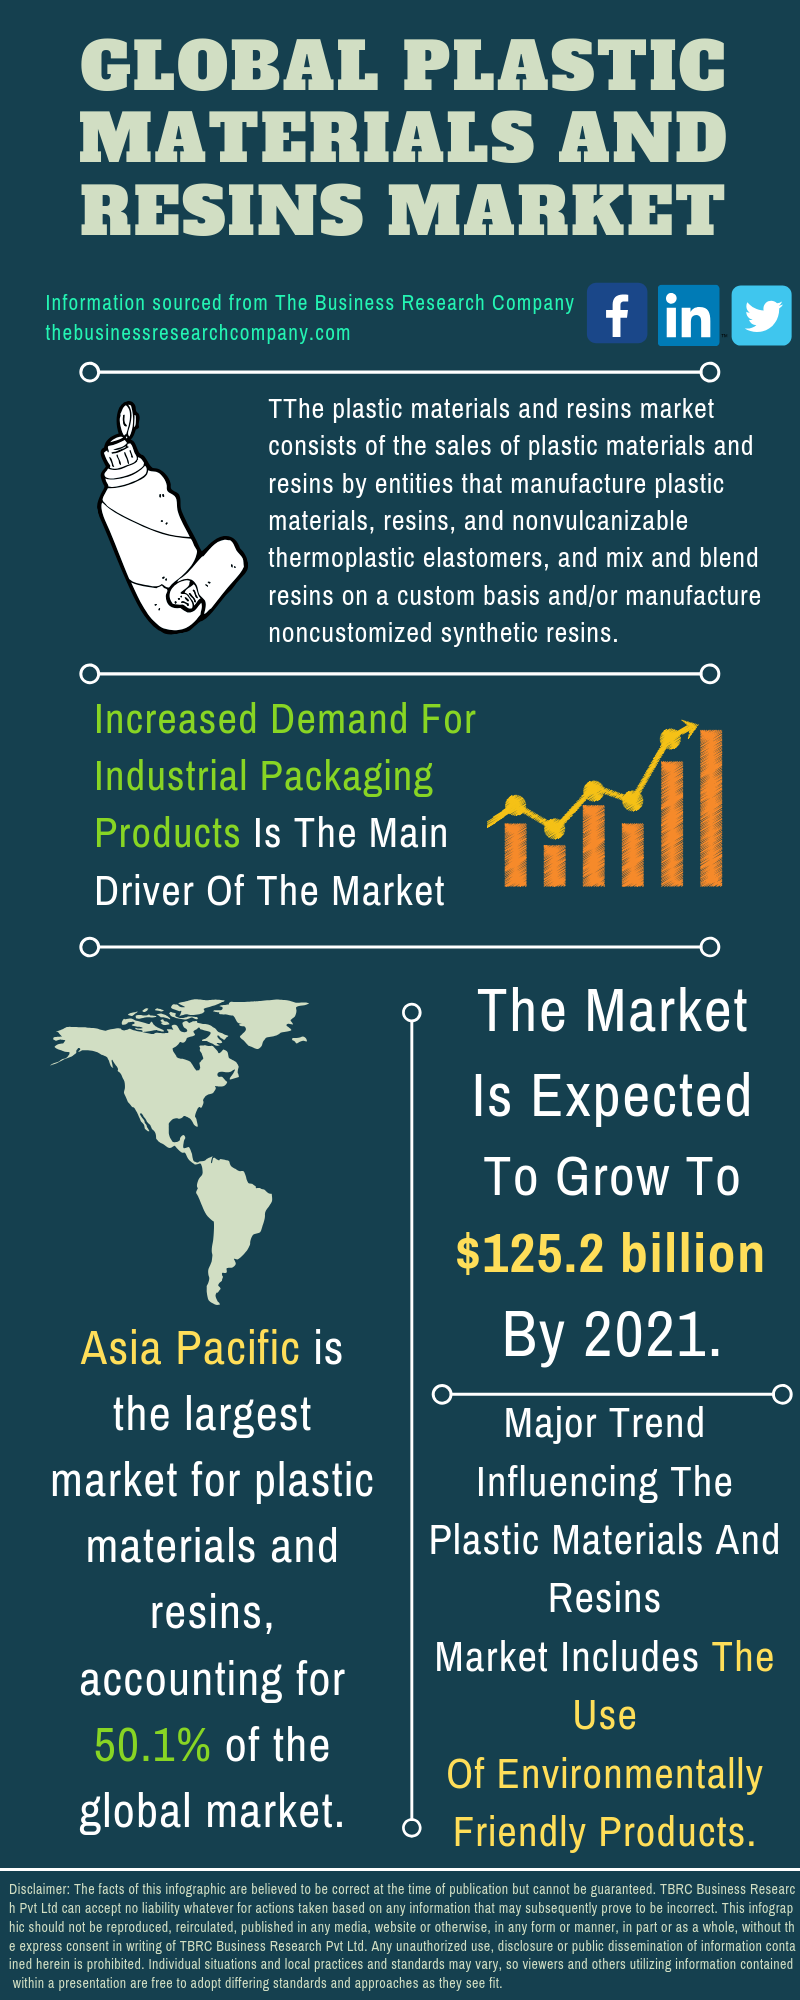 Plastic Materials And Resins Market